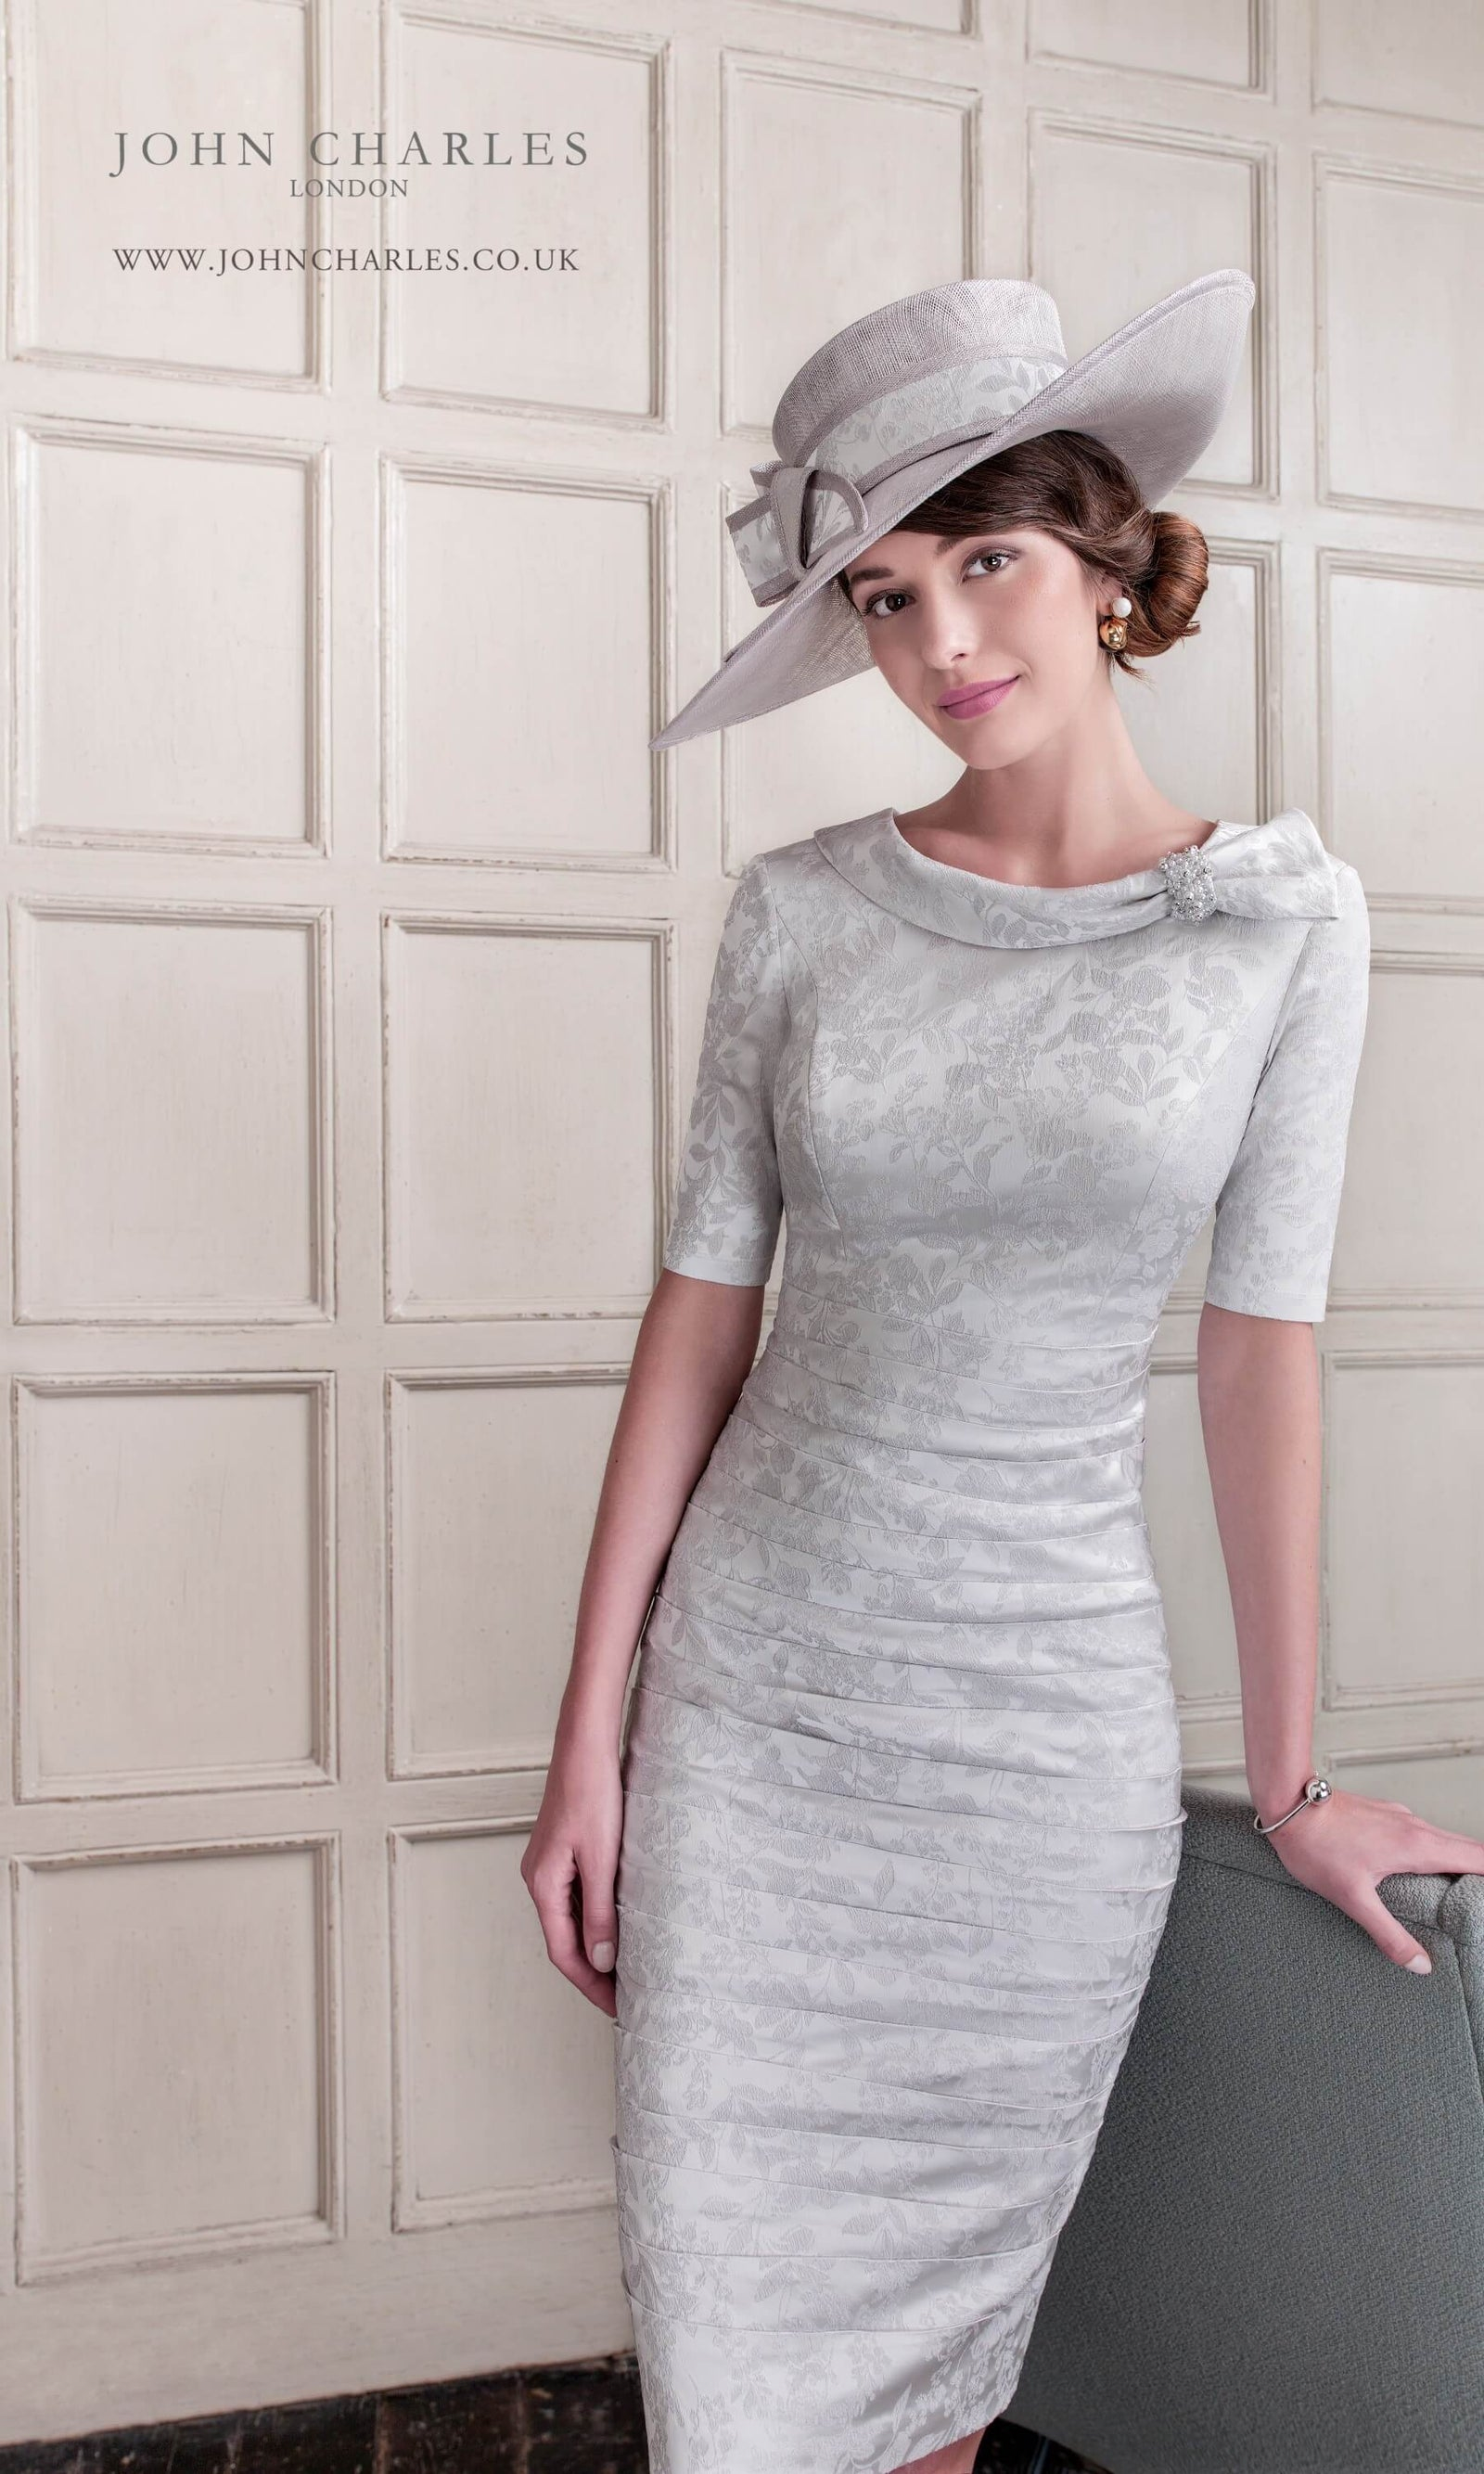 26453 Silver Grey John Charles Stretch Dress With Sleeves